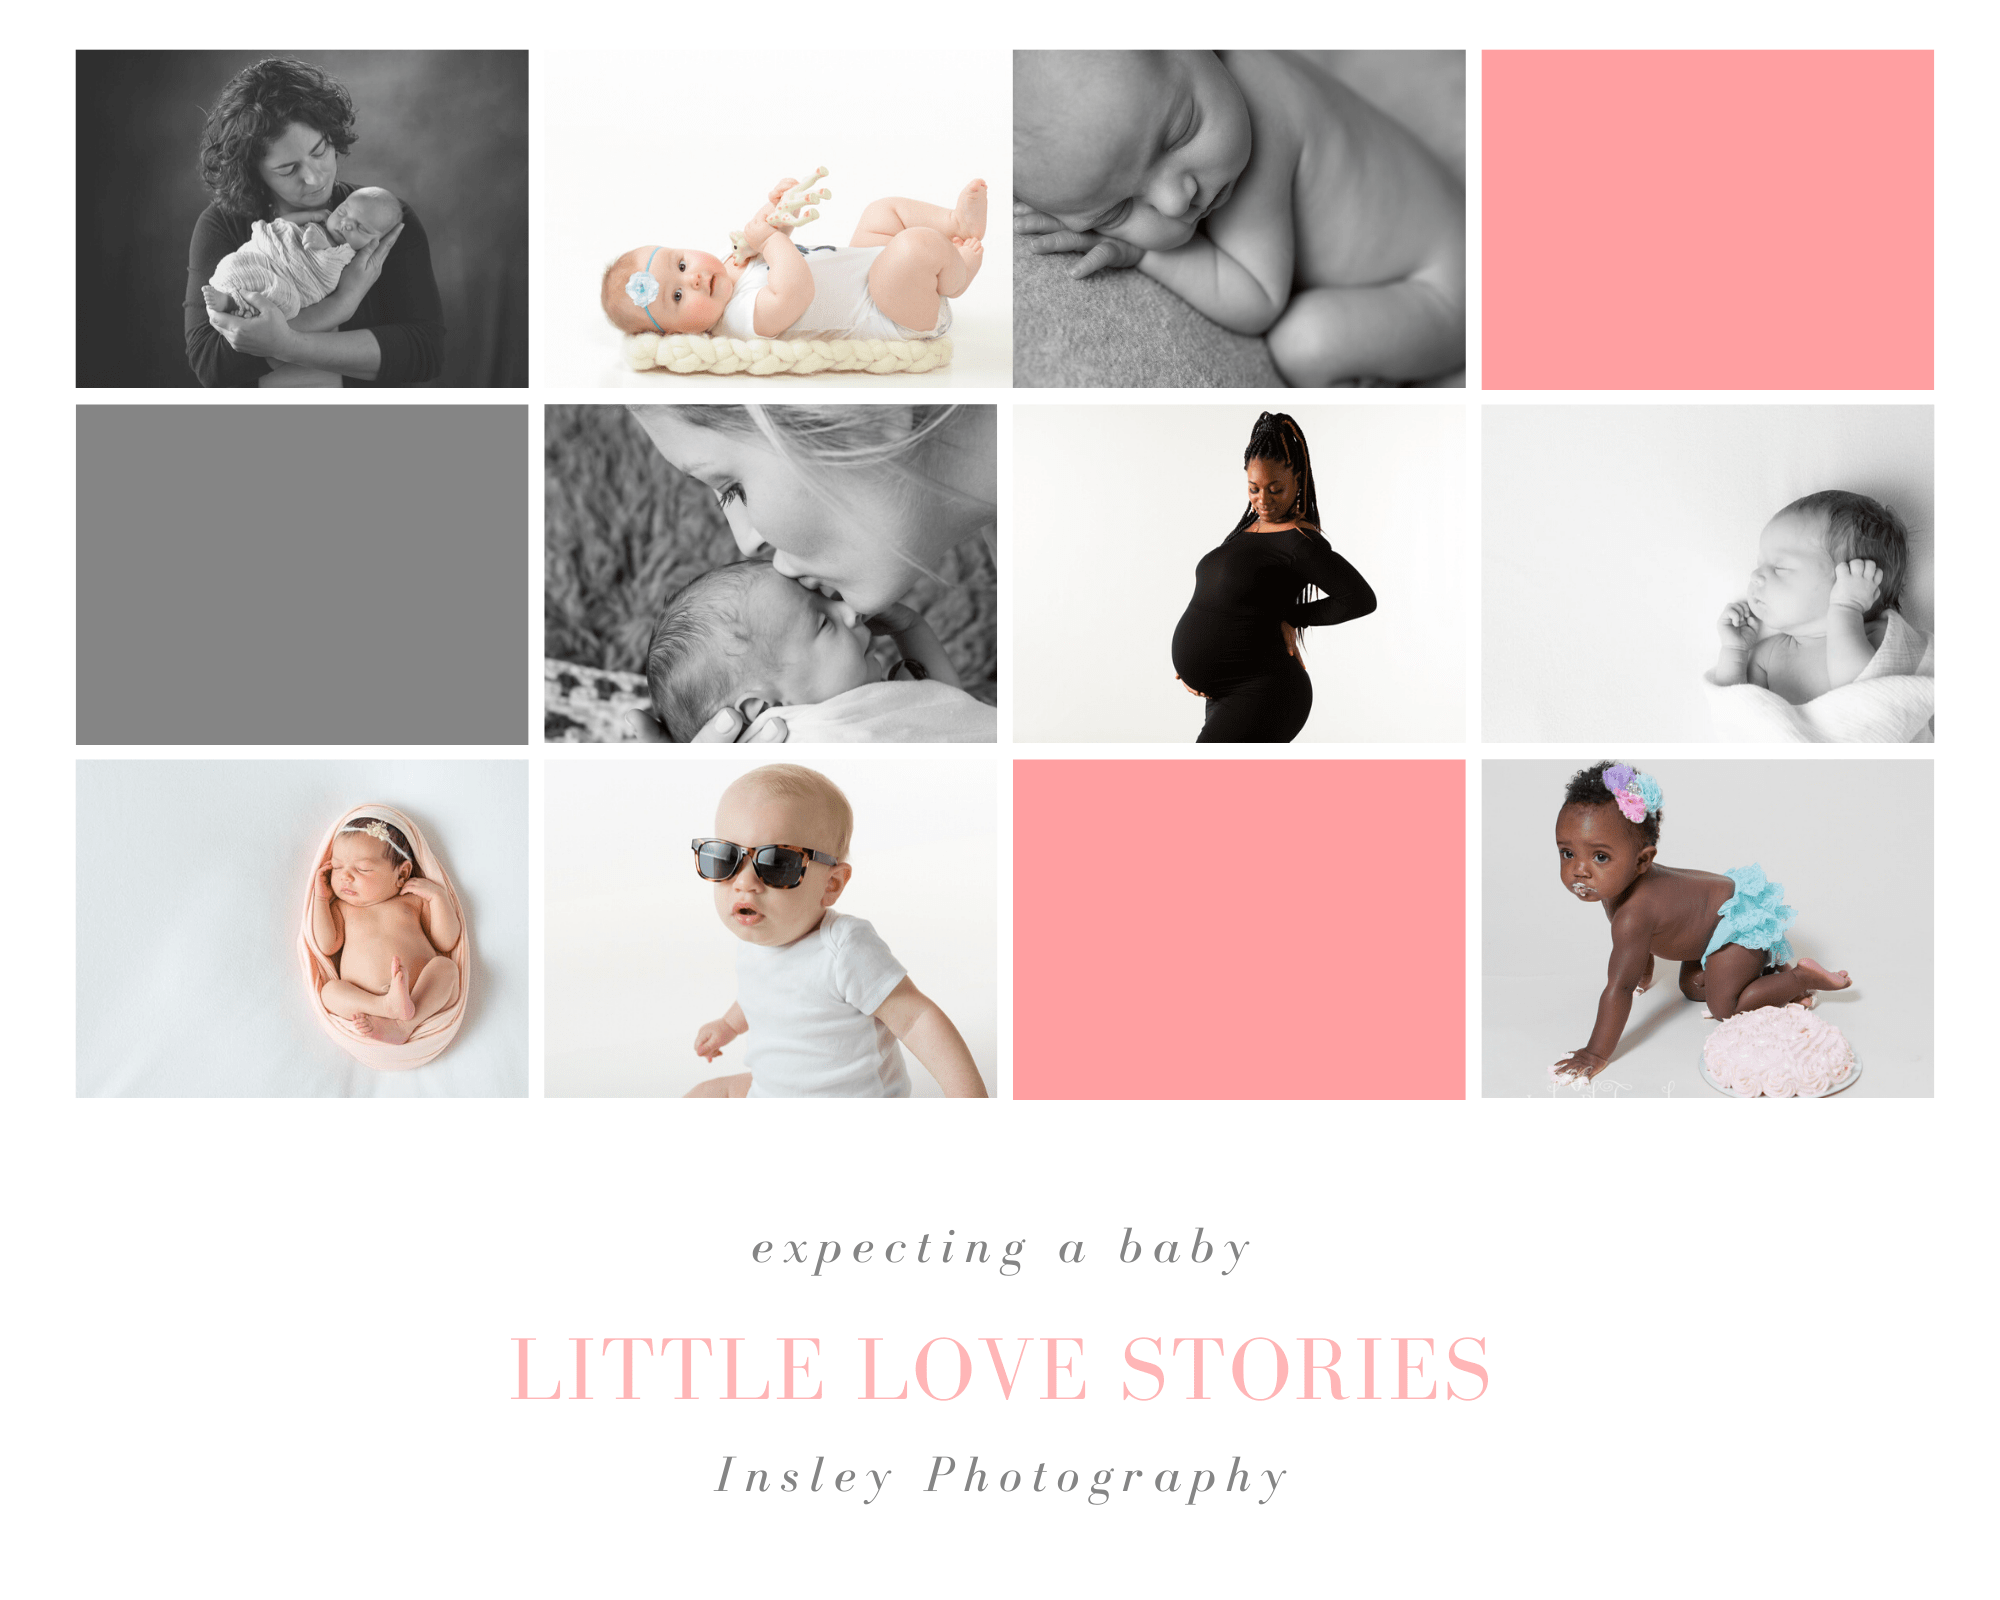 little love stories, baby's first year, image collage, Fort Mill, SC, Charlotte, NC, Tega Cay, SC, newborn, pregnancy, crawling baby, sunglasses,